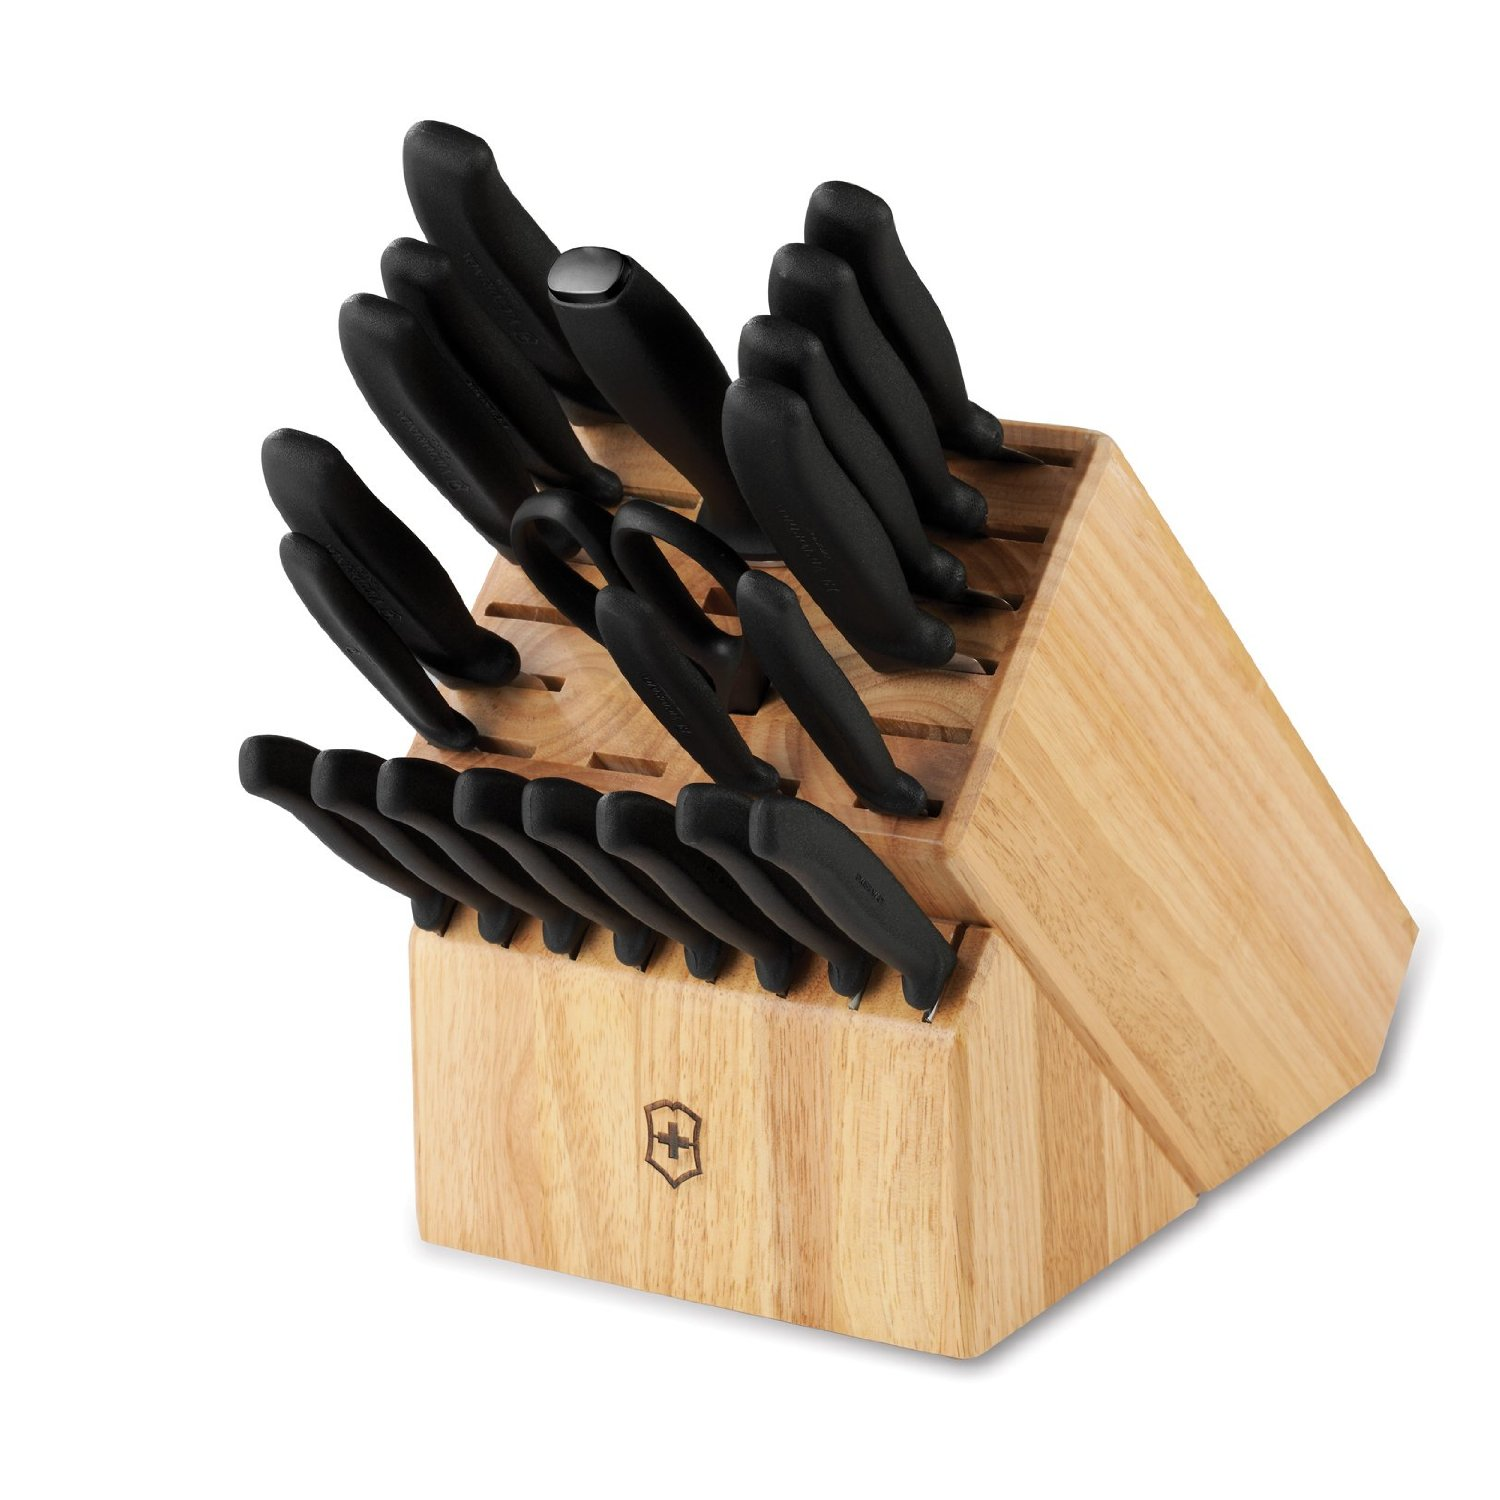 19 Top Kitchen Knife Sets That Abound With Elegance Warmth